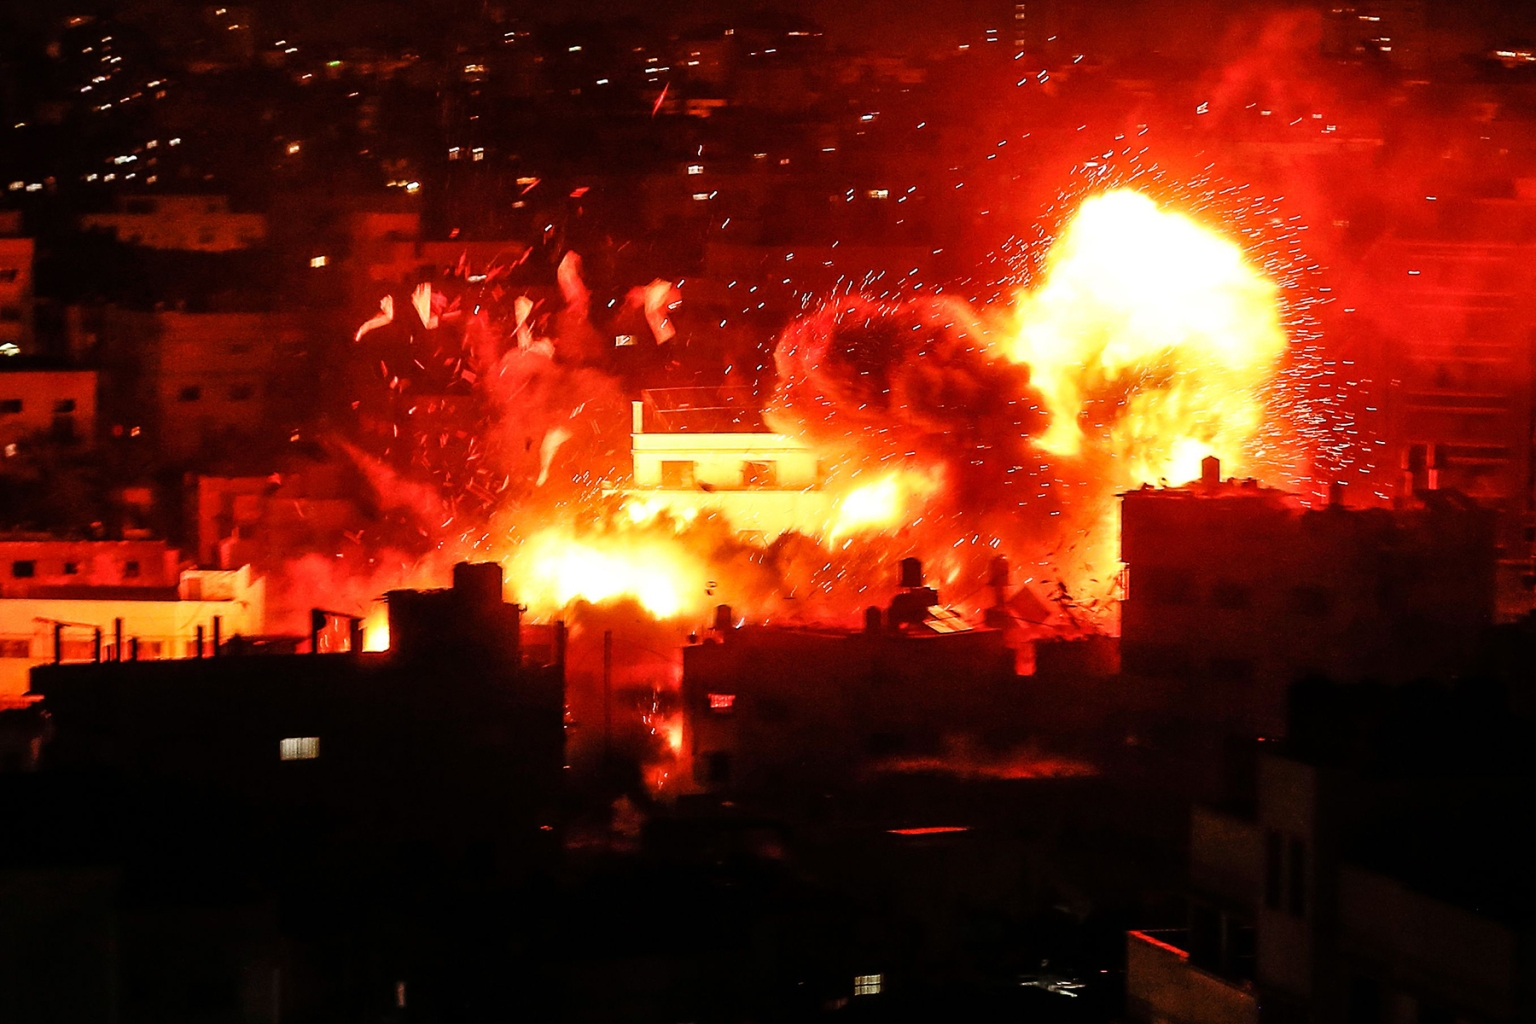 A ball of fire shoots above the building housing the Hamas-run television station al-Aqsa TV in the Gaza Strip during an Israeli airstrike on Nov. 12. MAHMUD HAMS/AFP/Getty Images